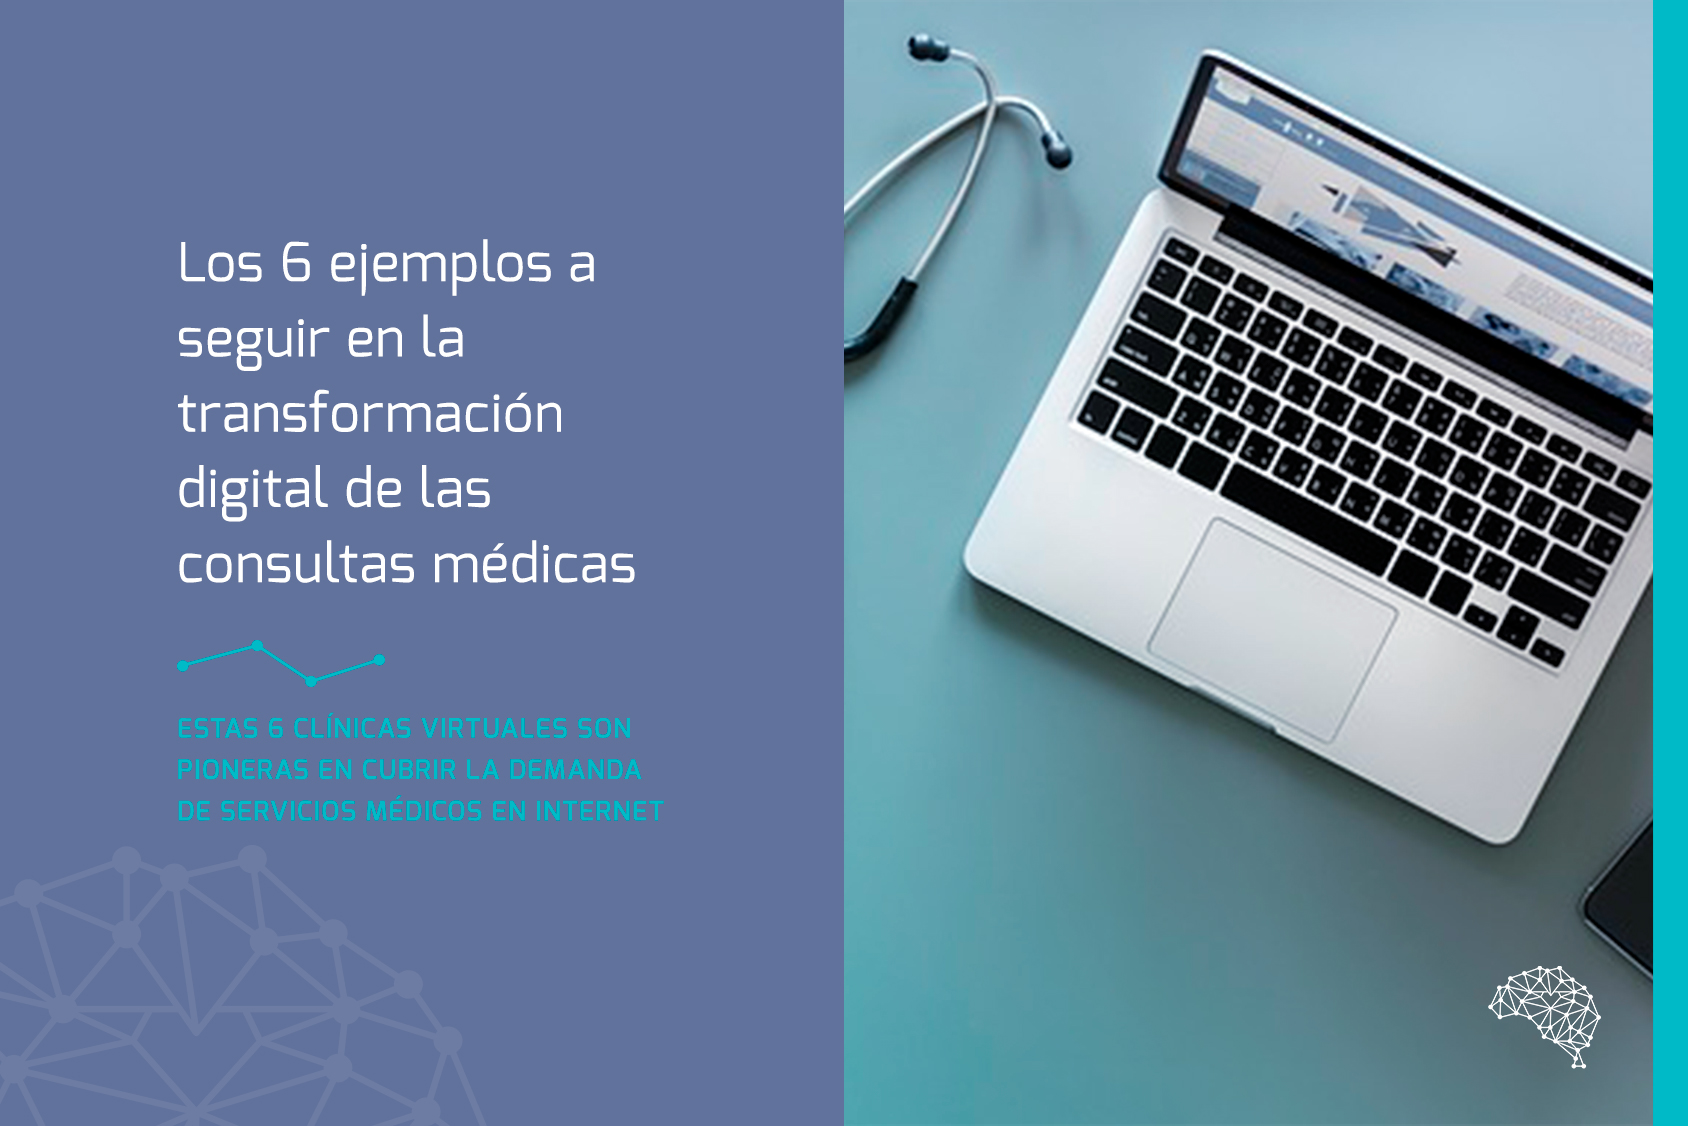 transformación digital de las consultas